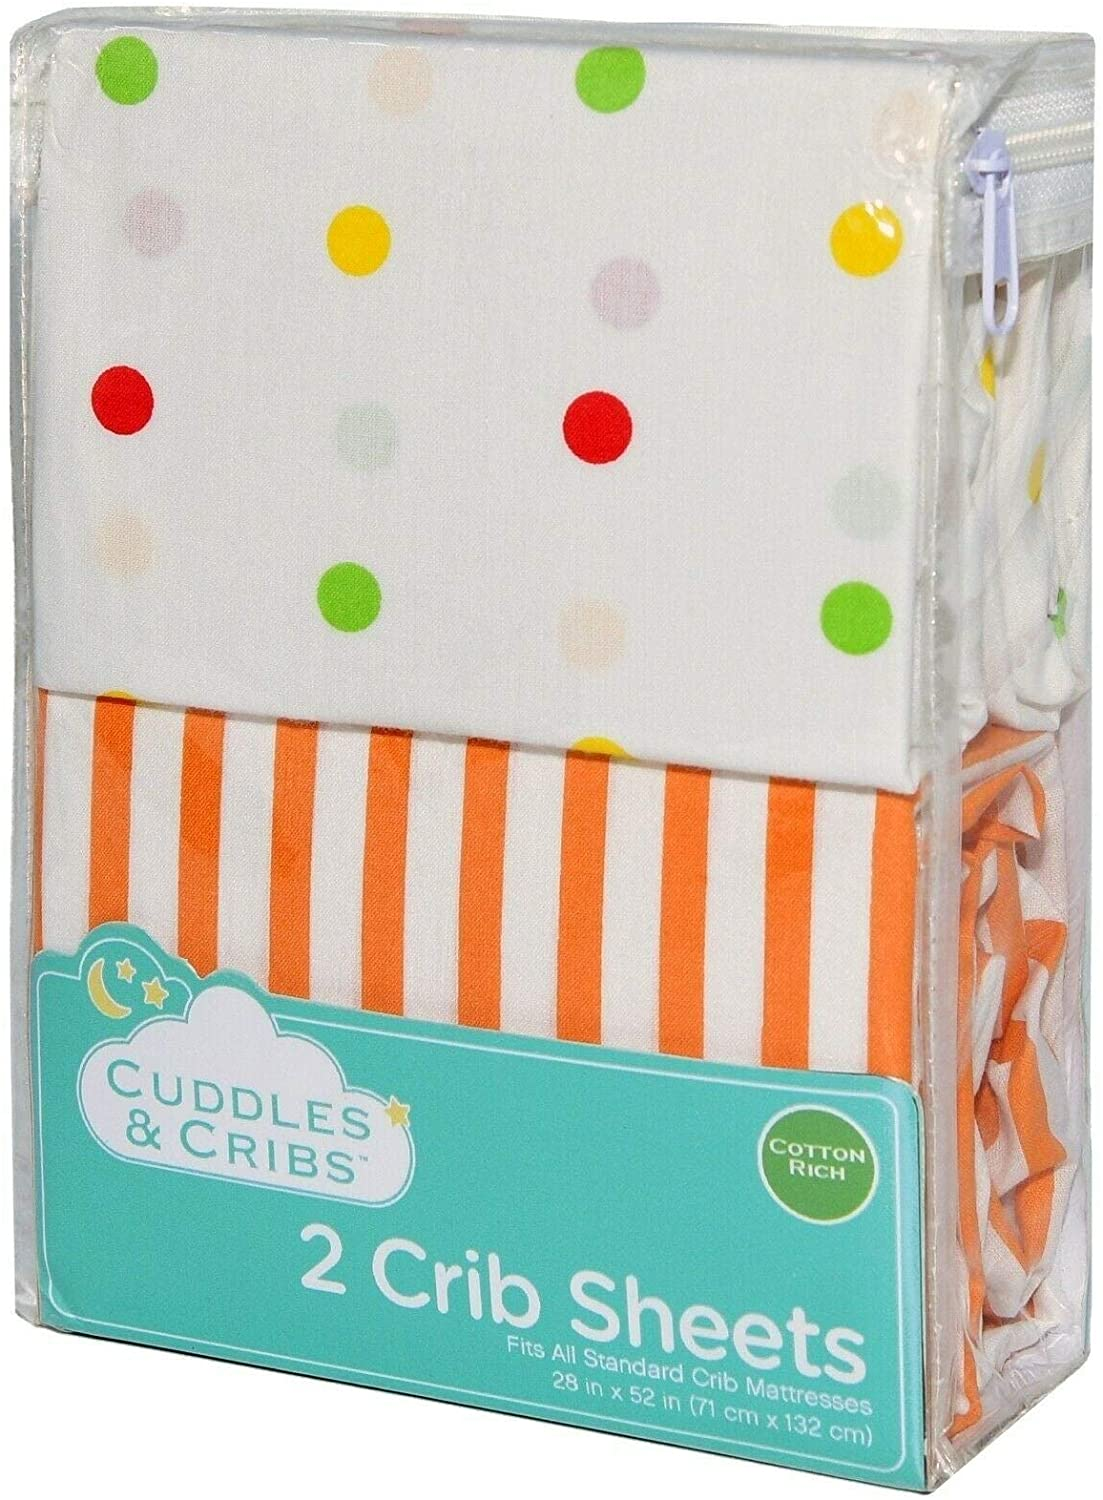 MISC Cuddles Cribs 2 Pack Cotton Rich Fitted Crib Sheet Polka Dots Dot Neutral Baby Boy Polyester